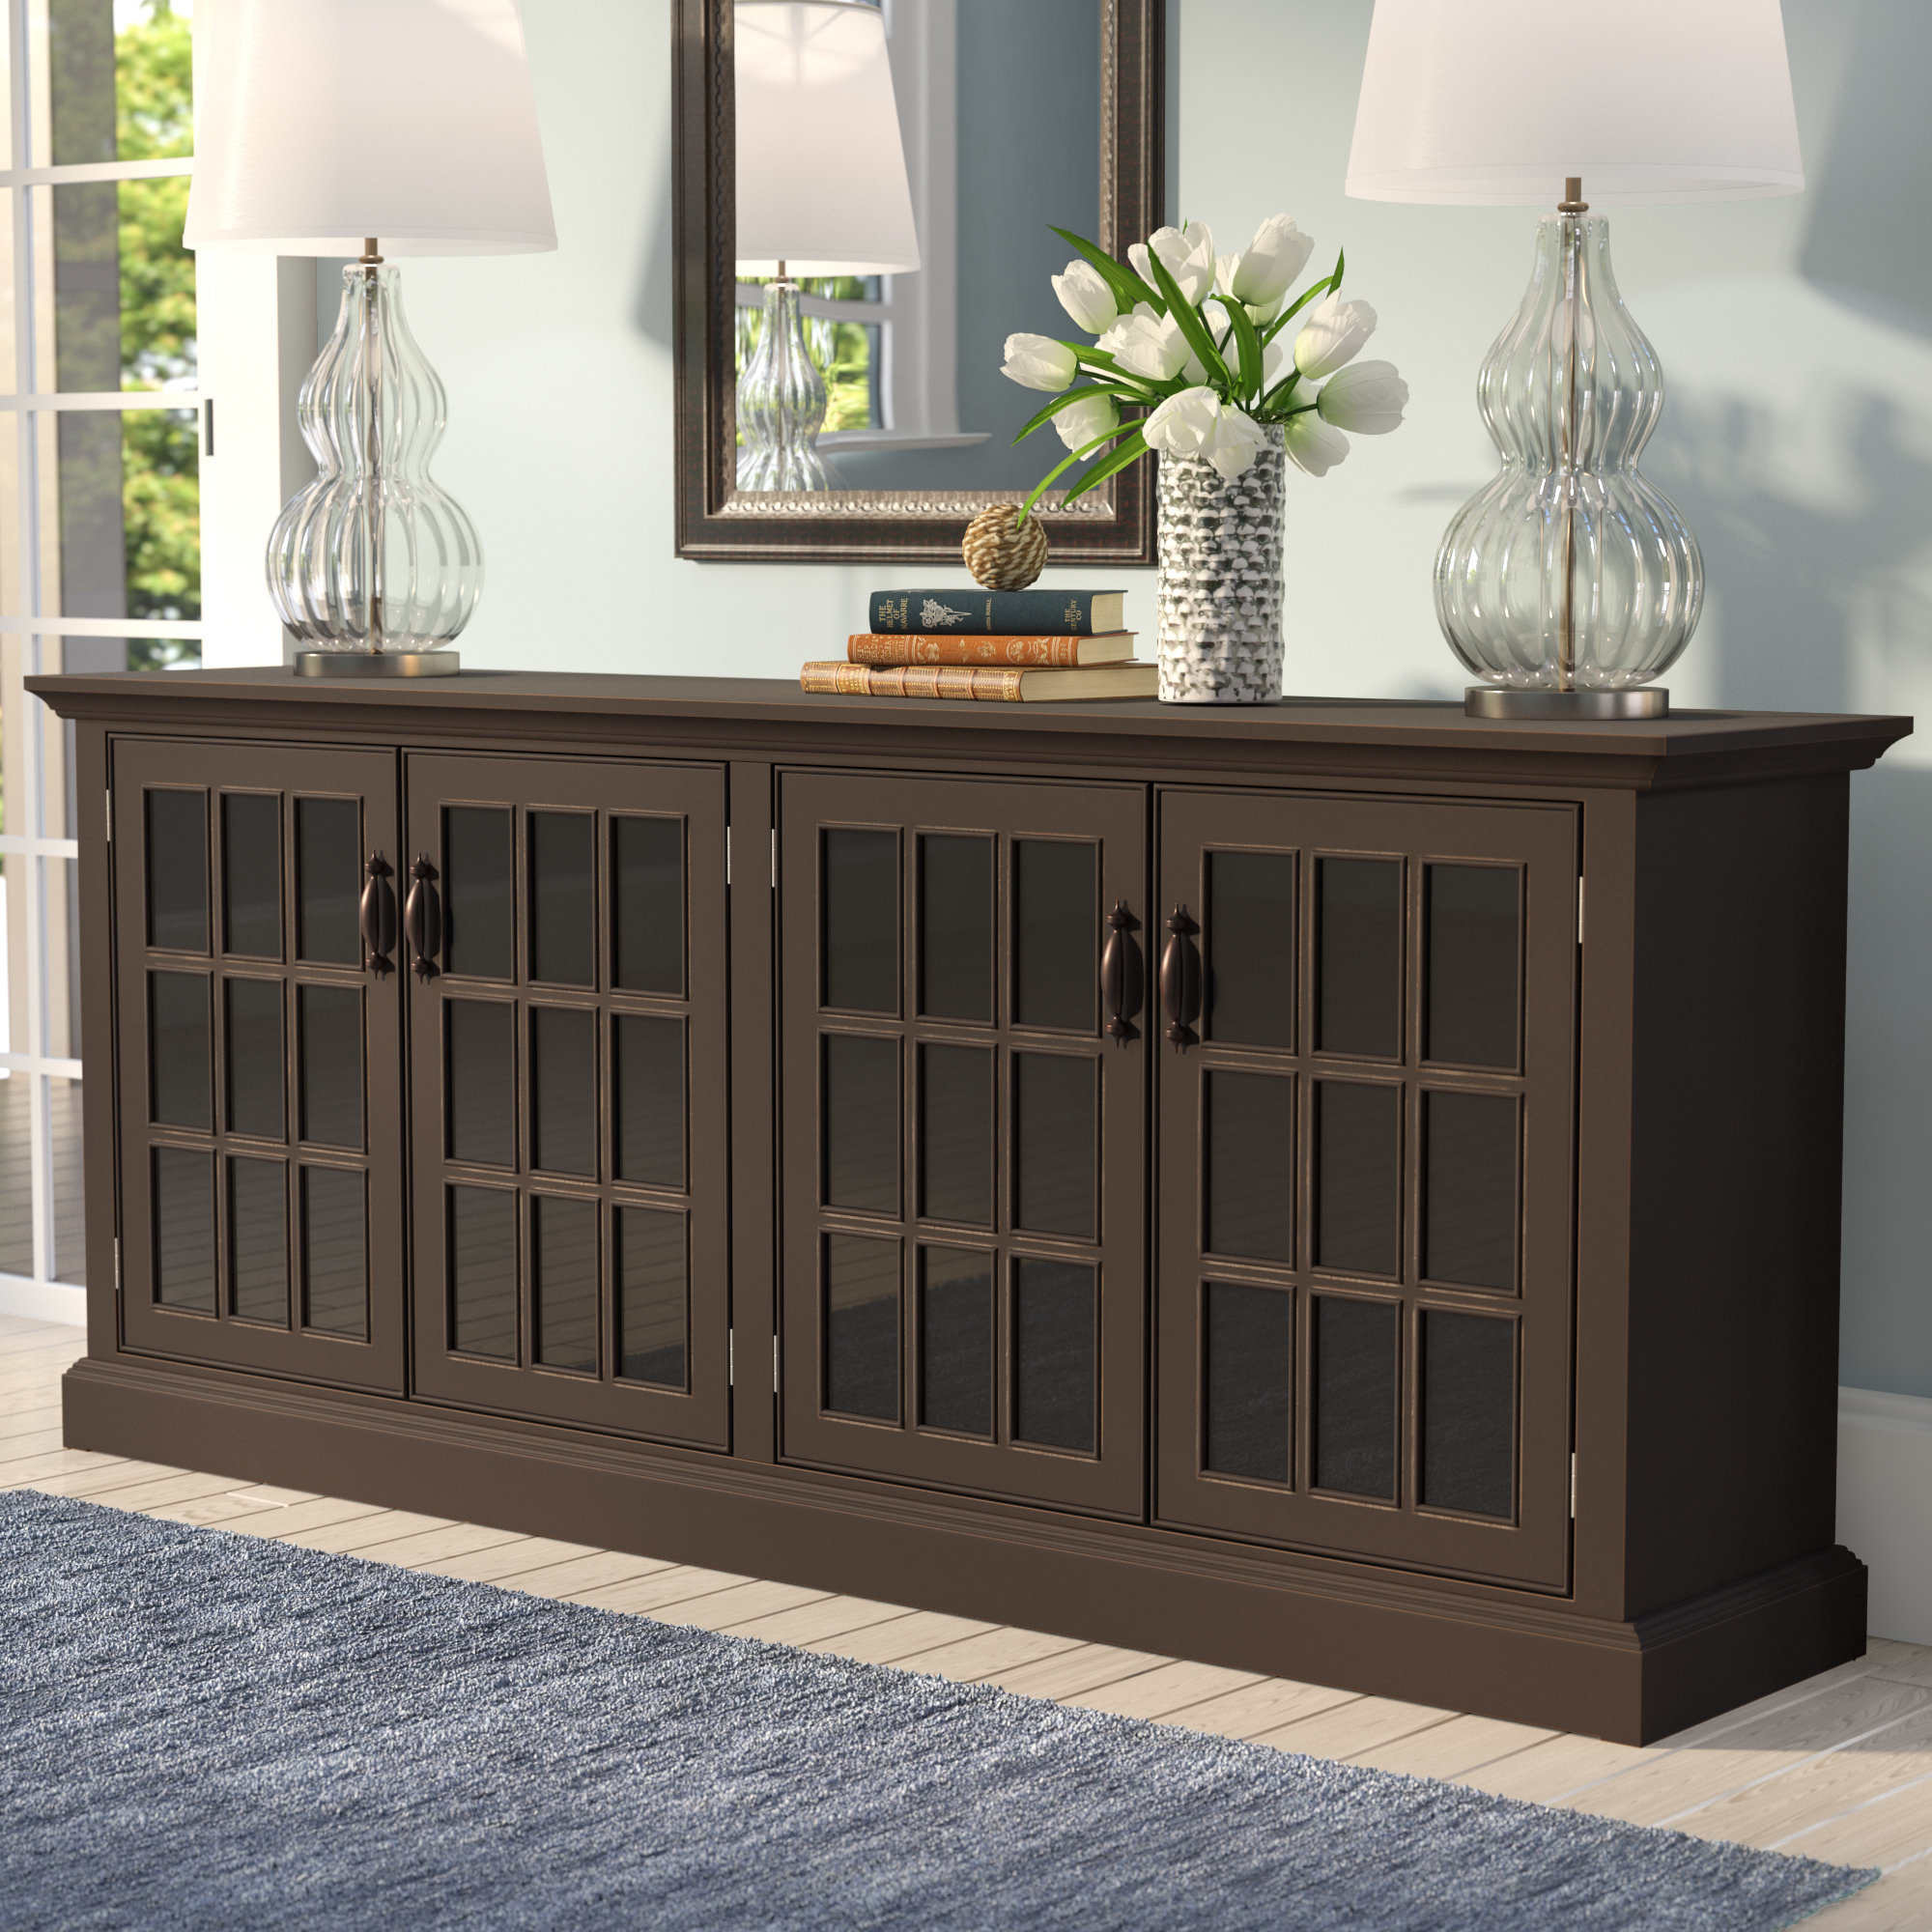 Blue Tv Stands You'll Love | Wayfair Inside Century Sky 60 Inch Tv Stands (View 24 of 30)